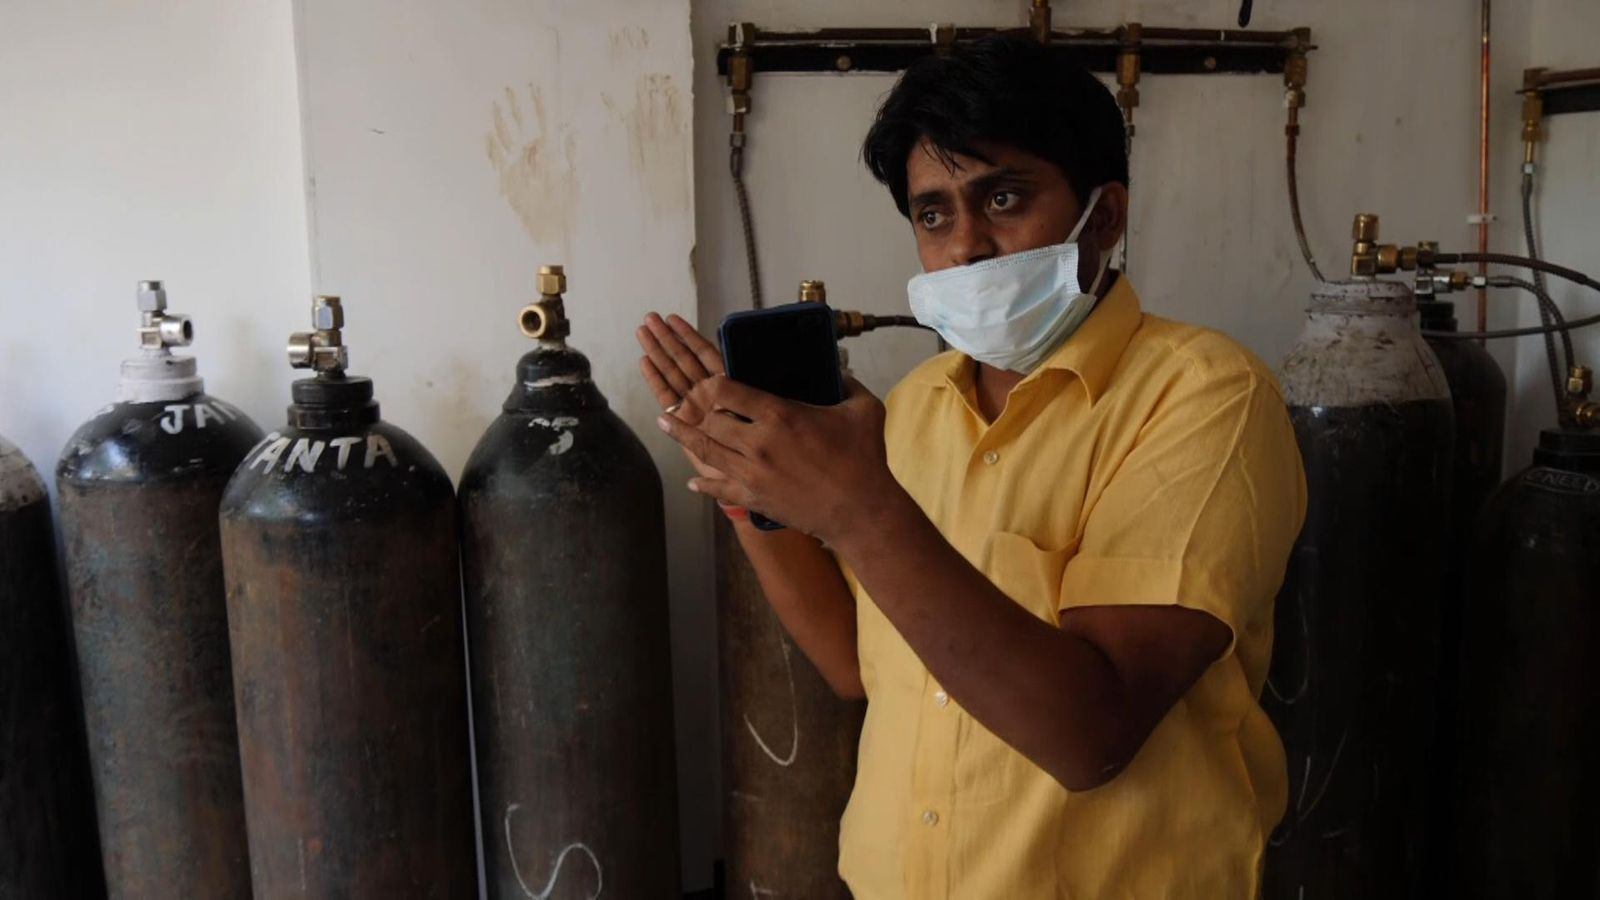 COVID-19: Police Raid Indian hospital And Accuse Doctors Of Hoarding Much Needed Oxygen Supplies